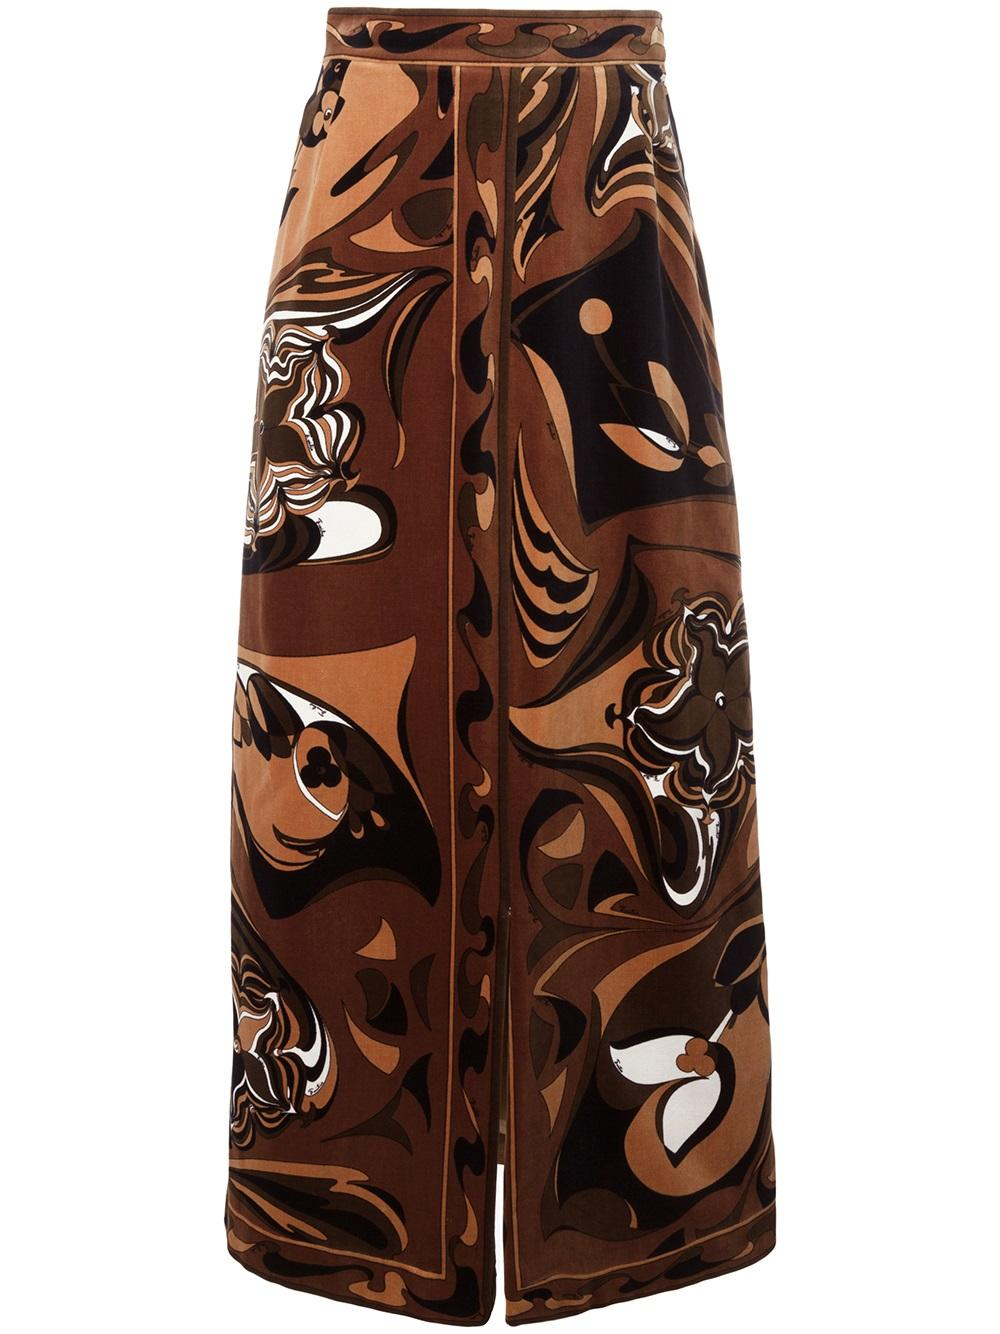 Vintage Pucci Skirt